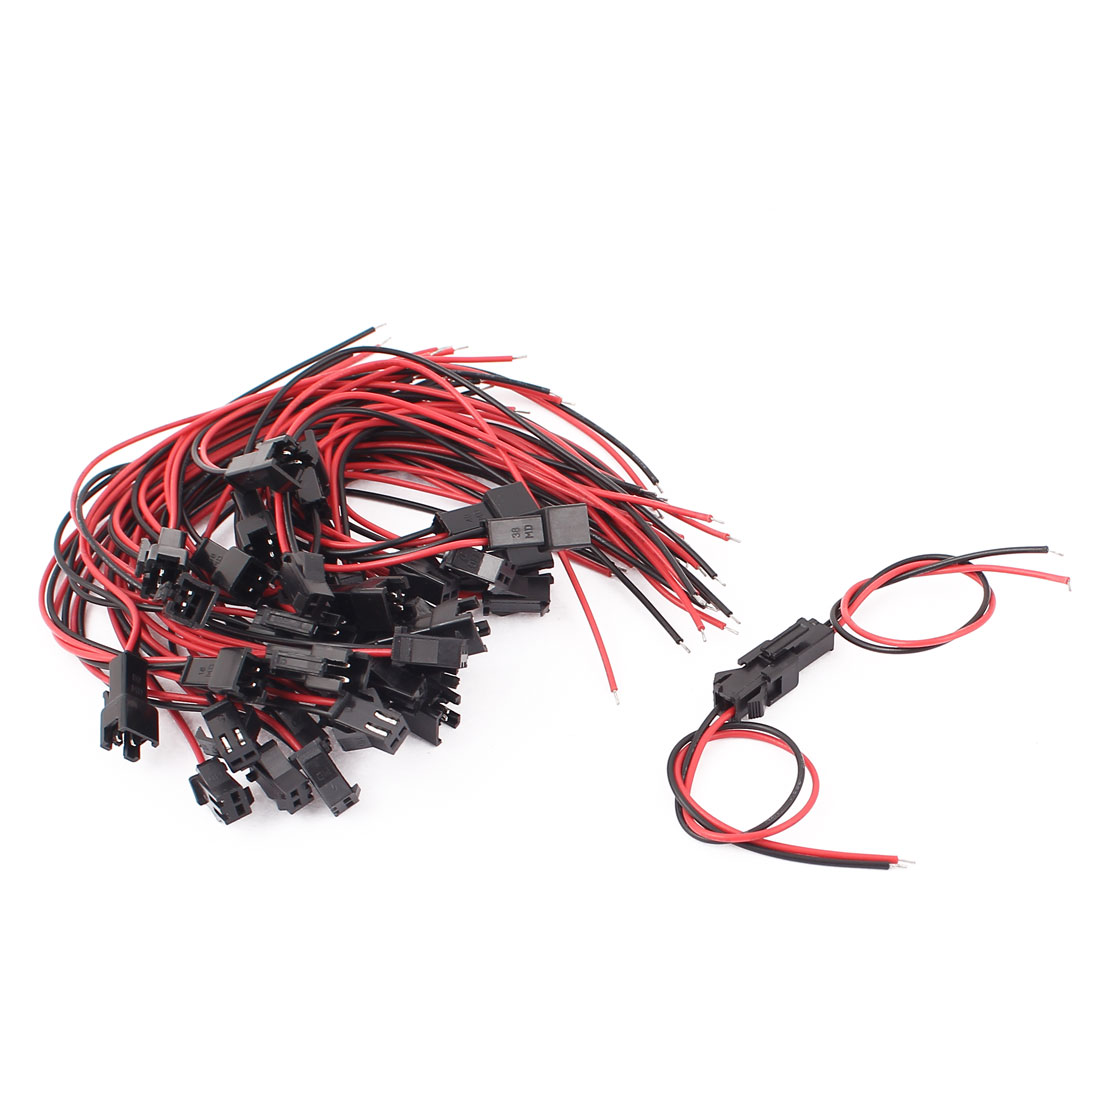 20Pairs JST SM 2P Female to Male Single Head RC Battery Connector Cable Wire 15cm Long